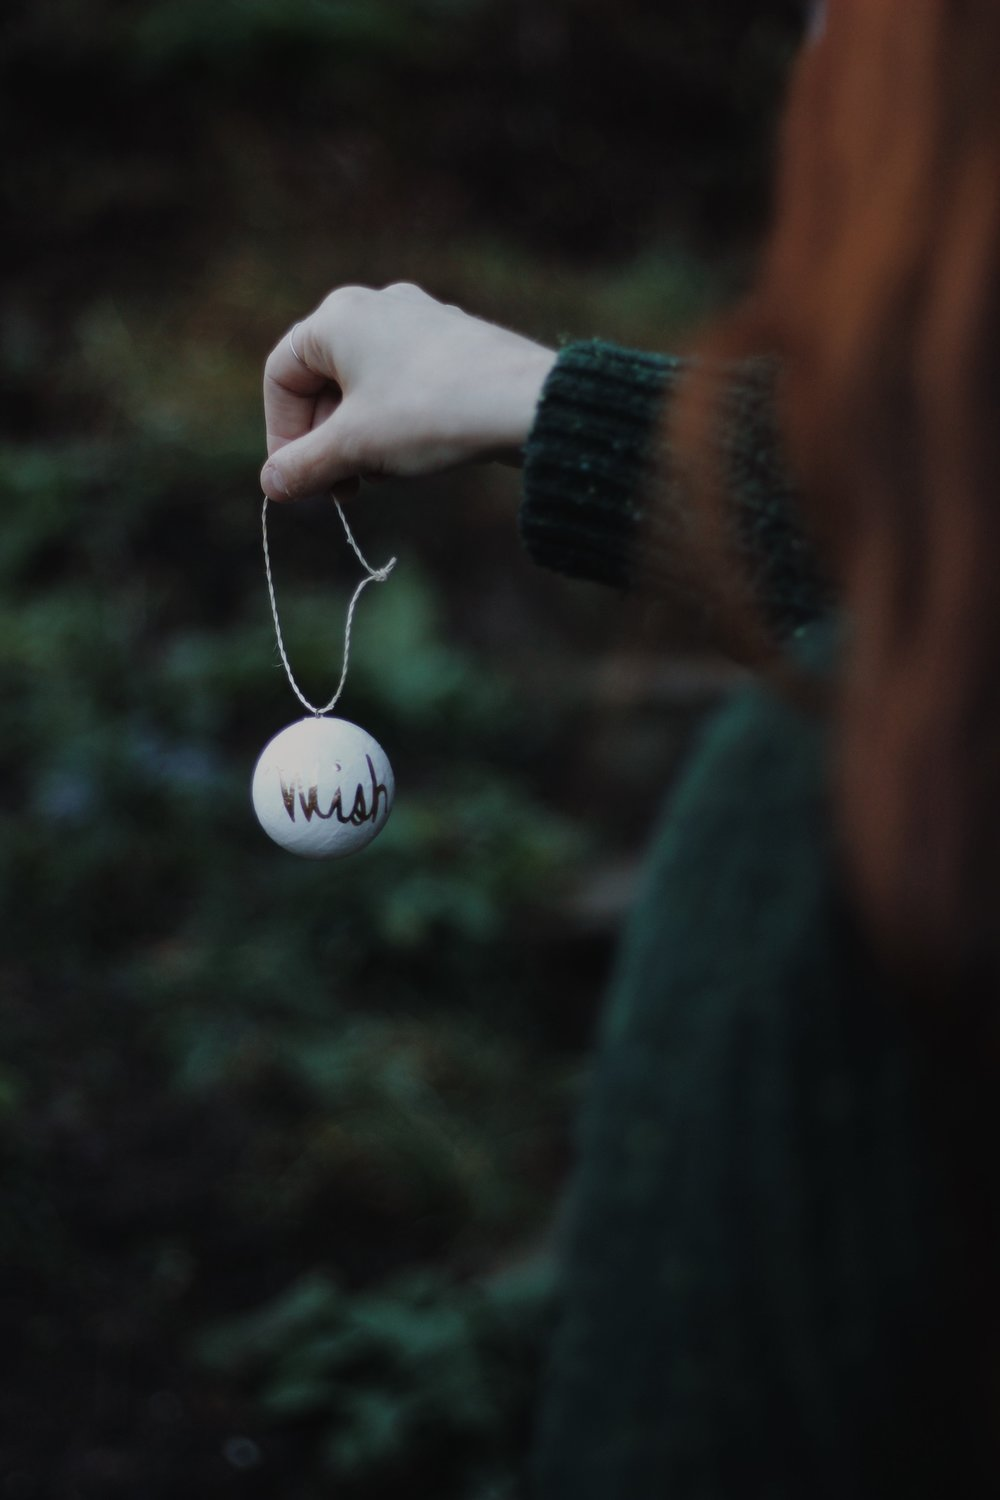 Girl holding bauble, Redhead Girl, Winter, Christmas, Green Jumper, Christmas Bauble